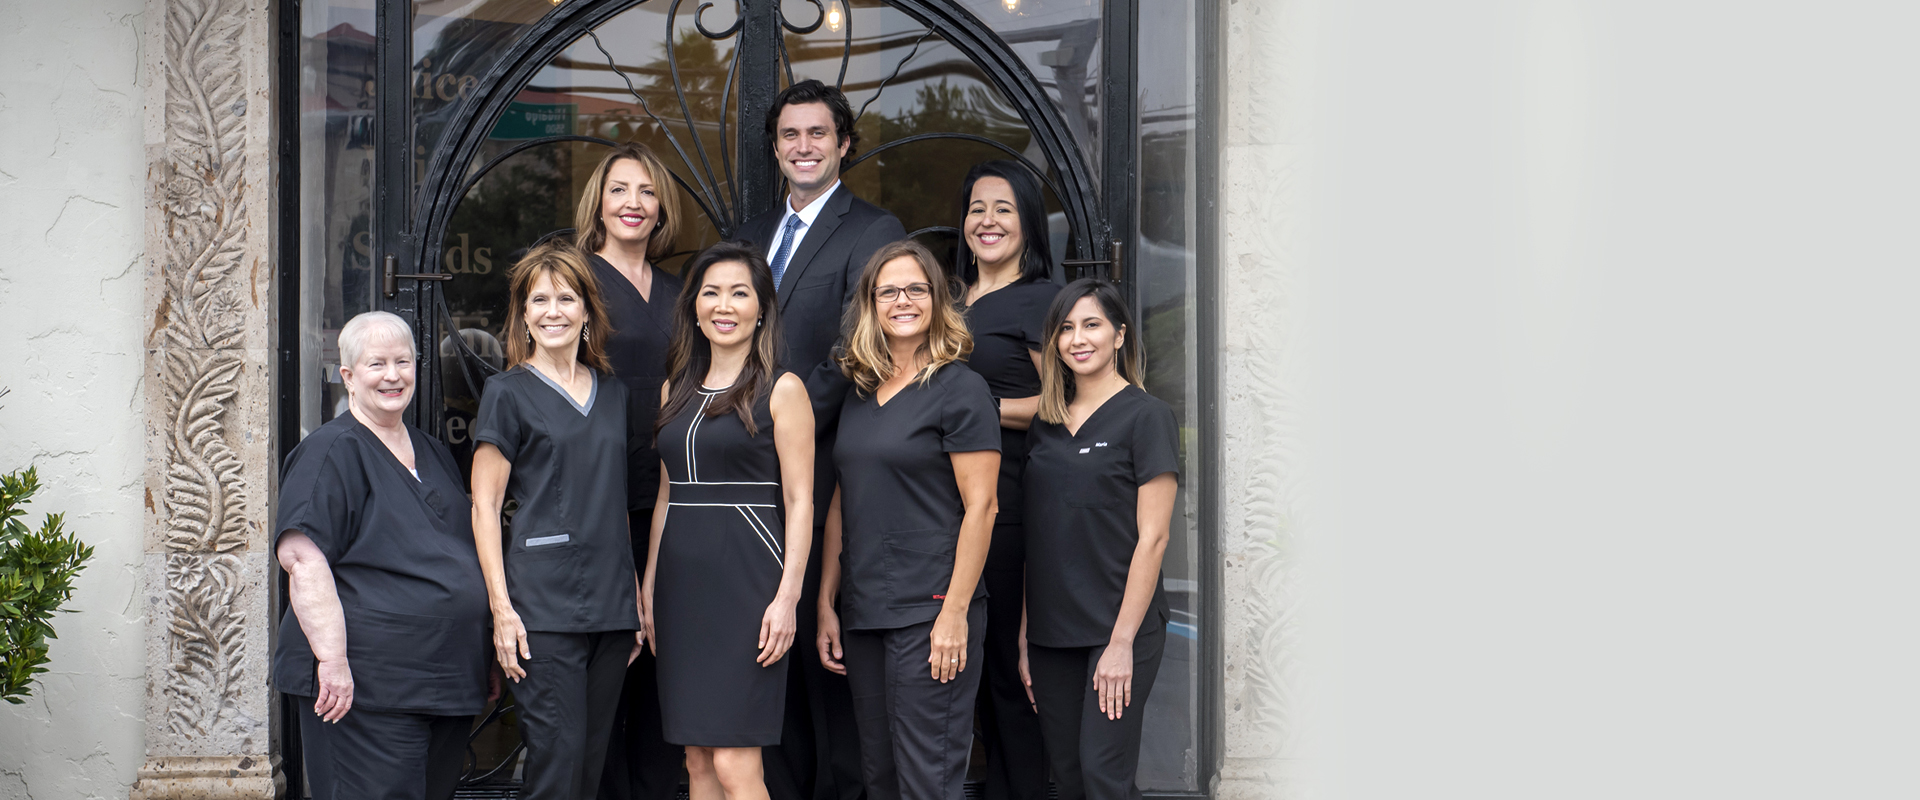 Welcome to Pinnacle Dental